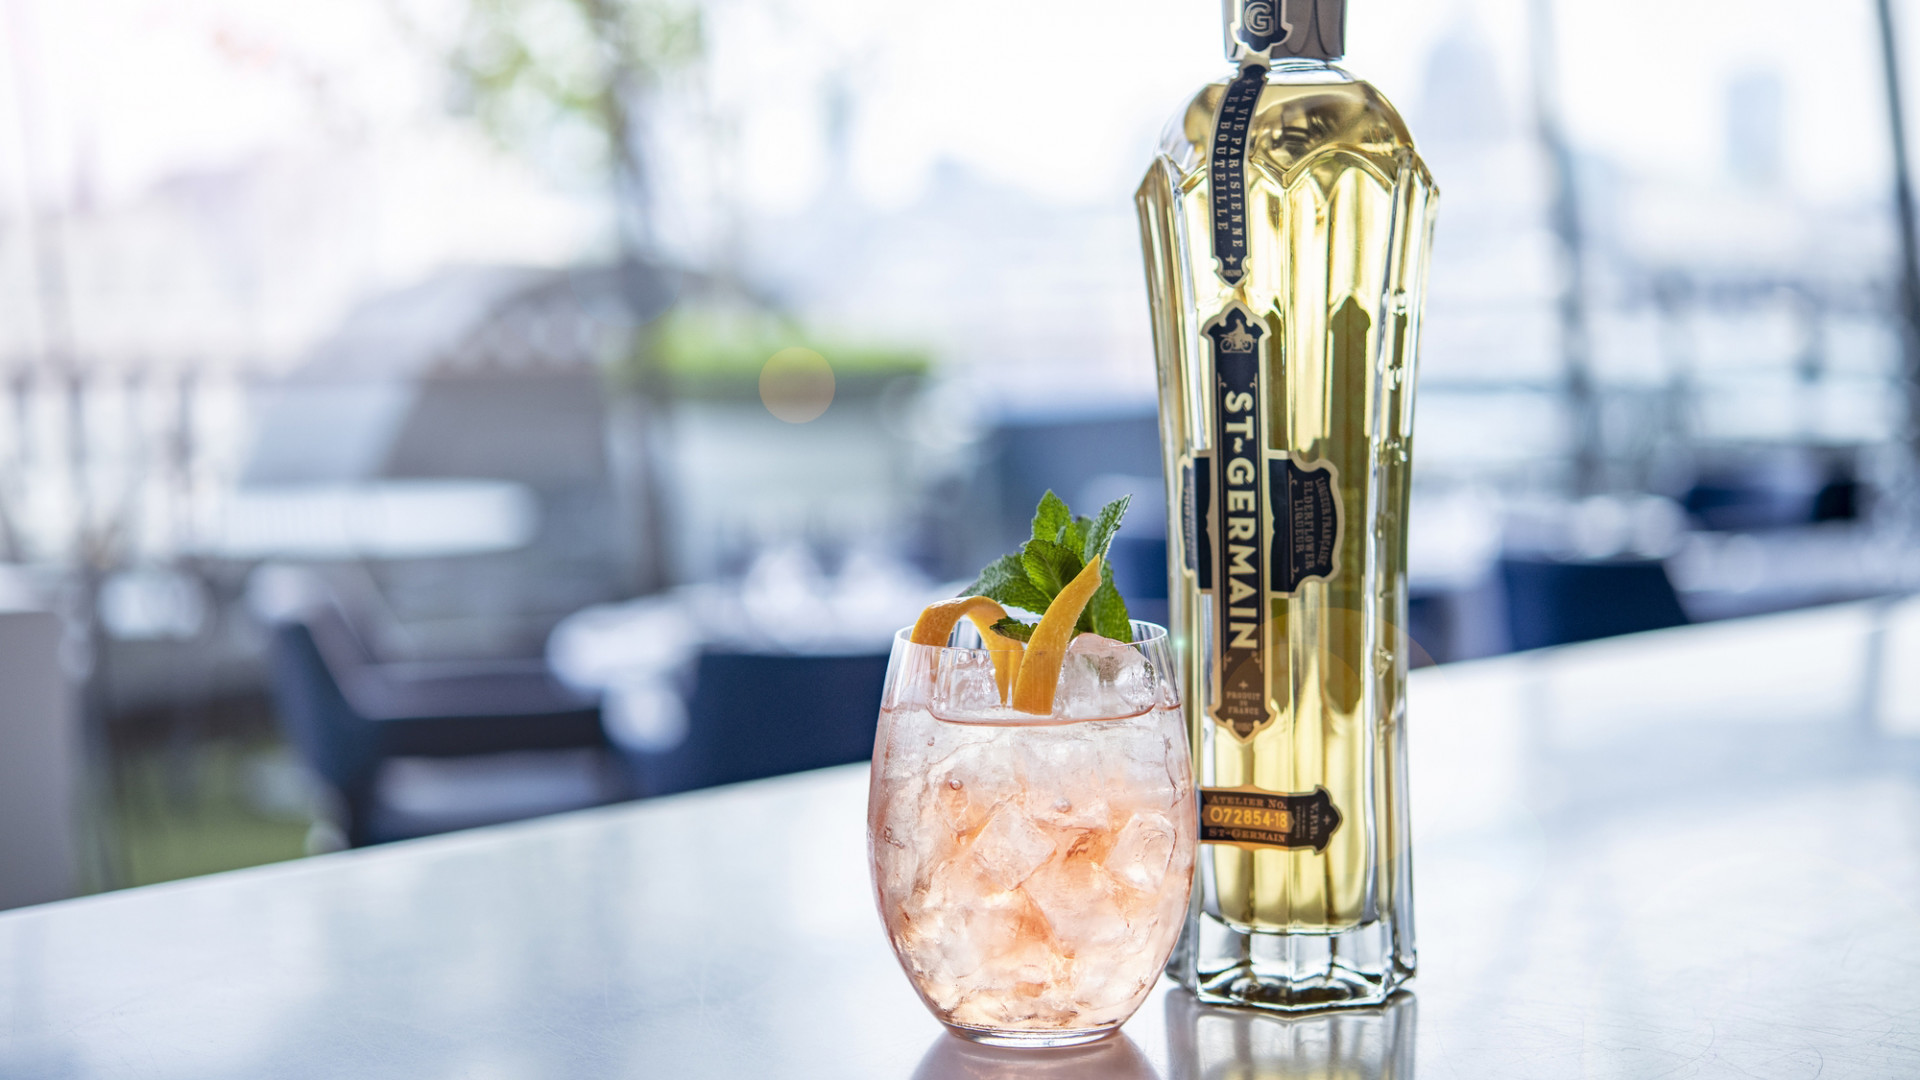 St Germain x OXO Tower